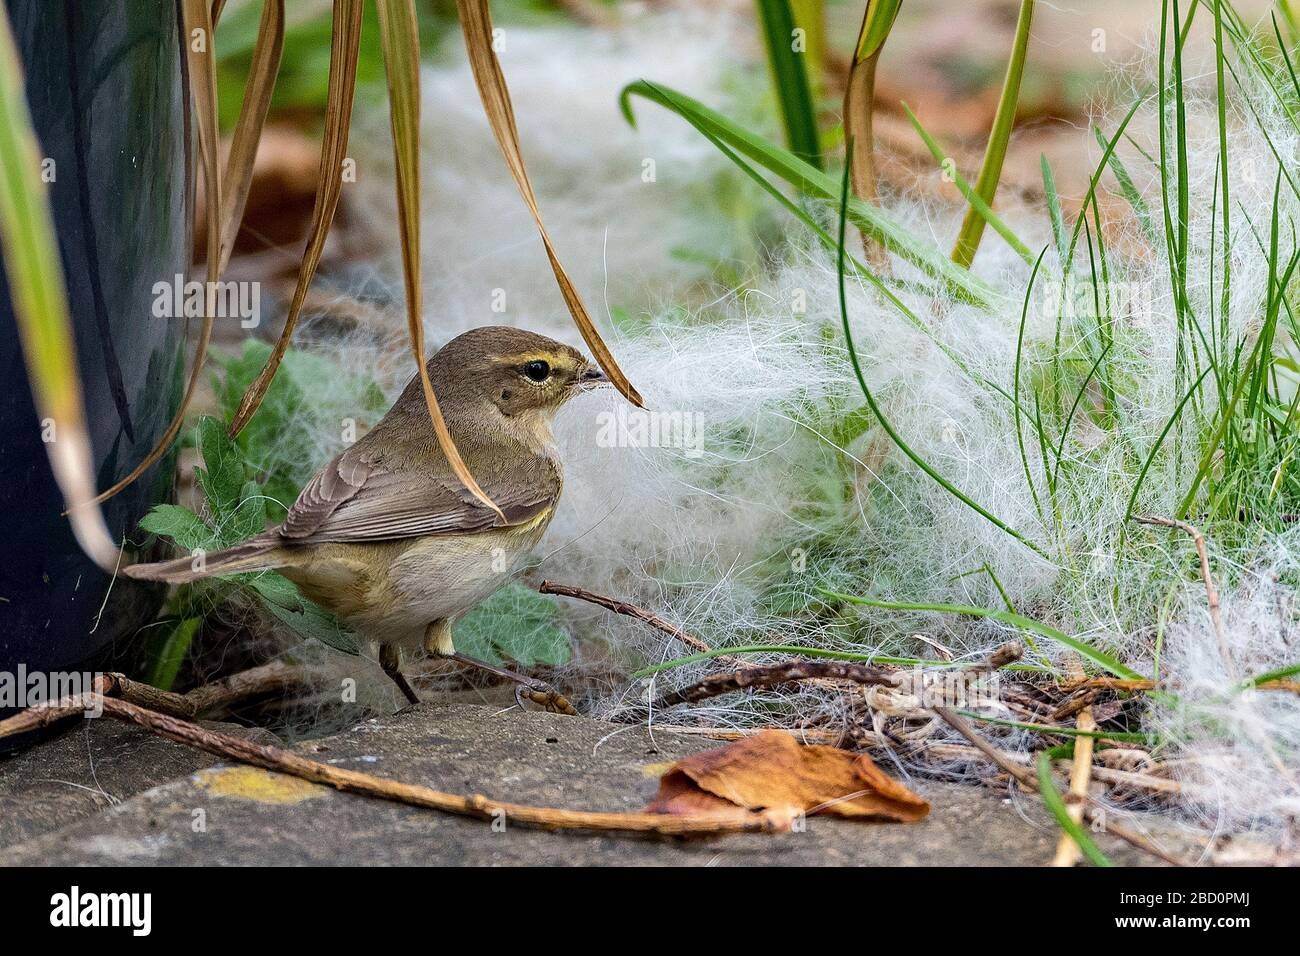 Common garden bird the Chiffchaff collecting nest material. Stock Photo